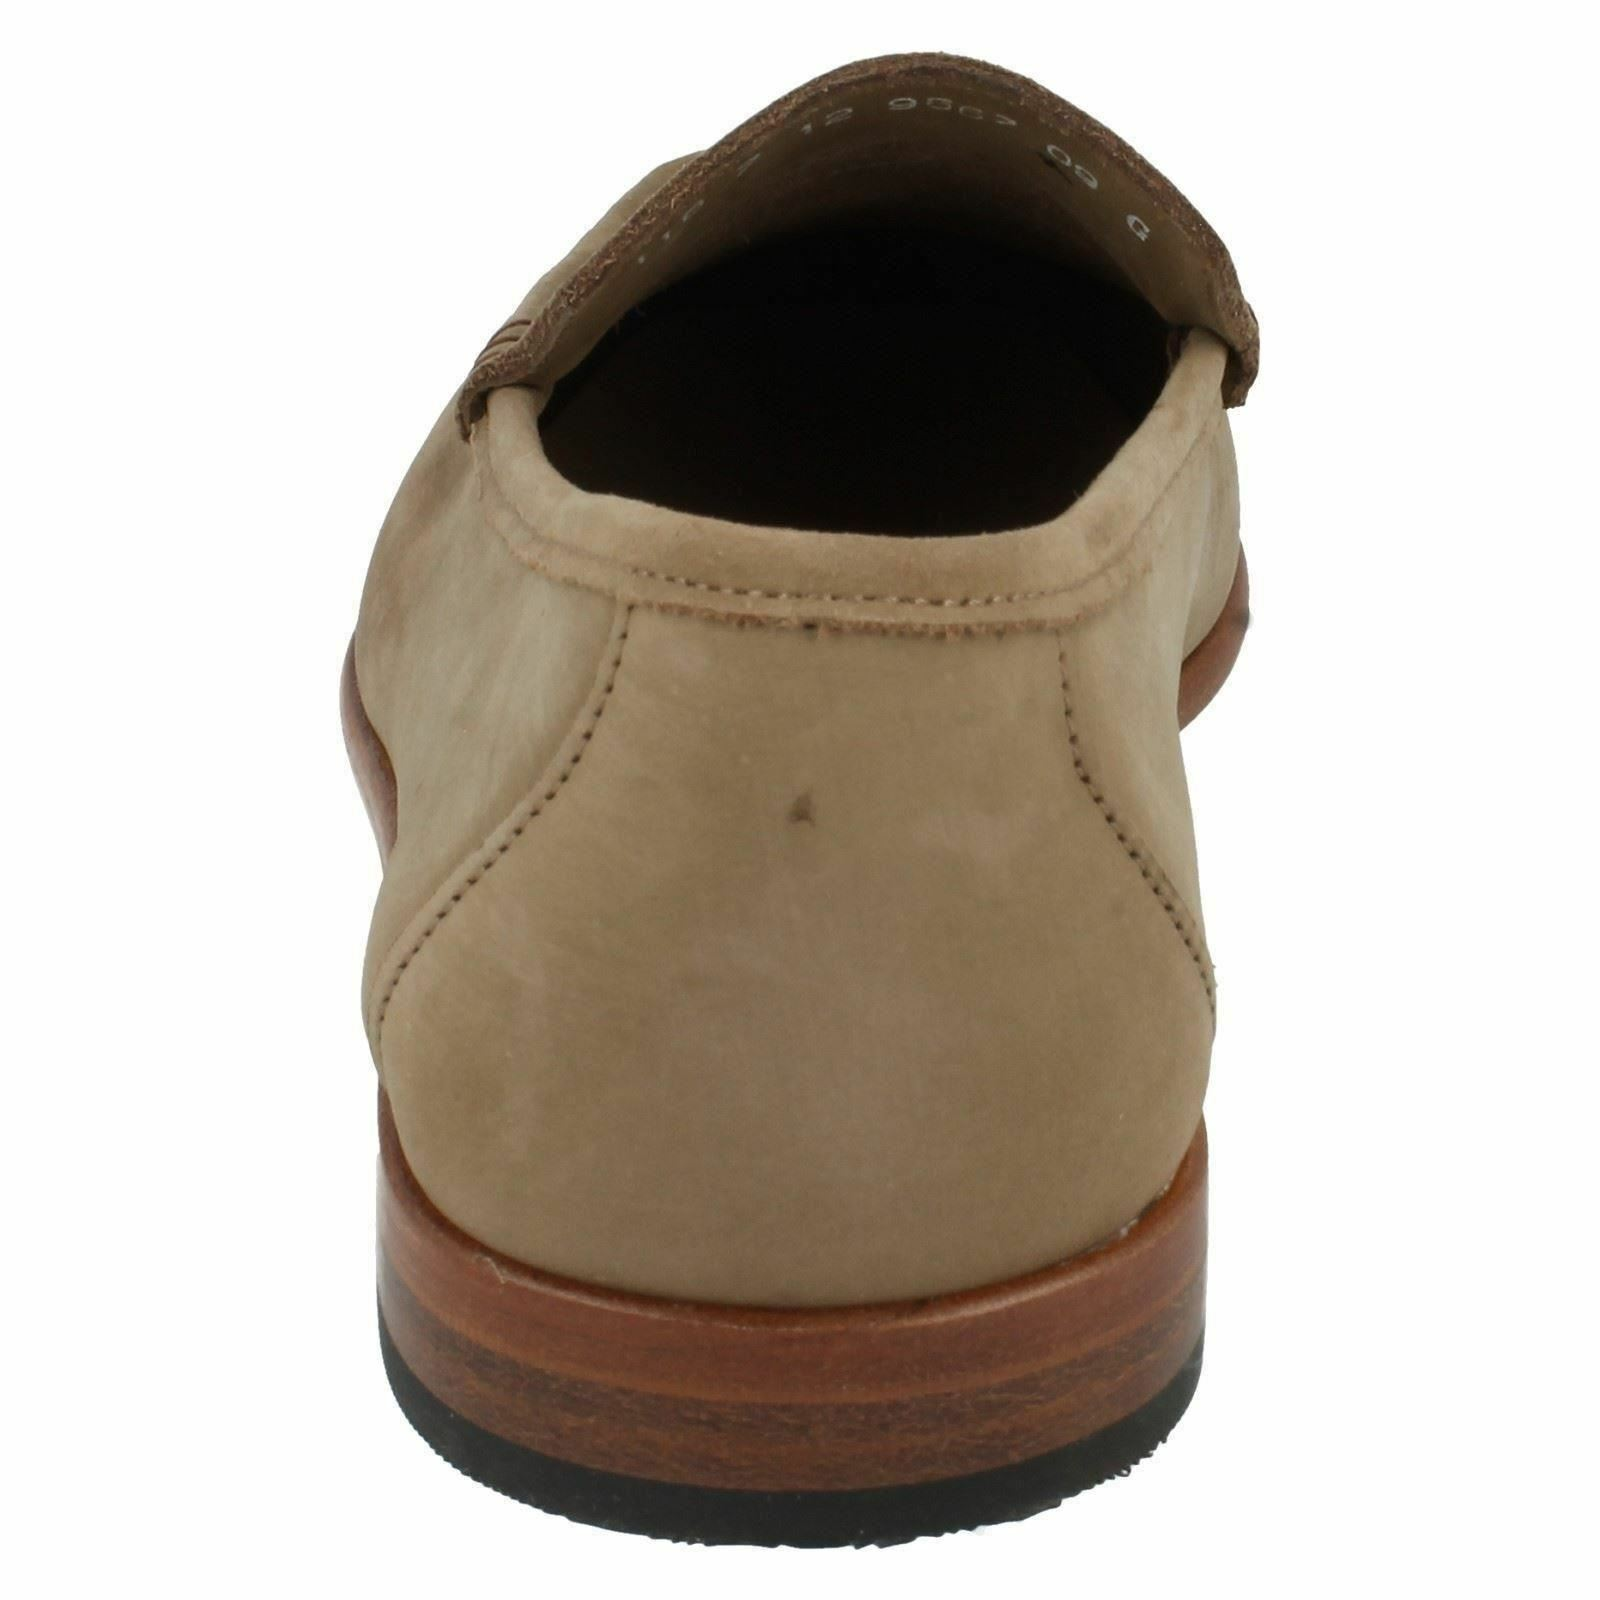 Mens Milano Taupe Nubuck G Fitting Moccasin Shoes By Grenson - £79.99